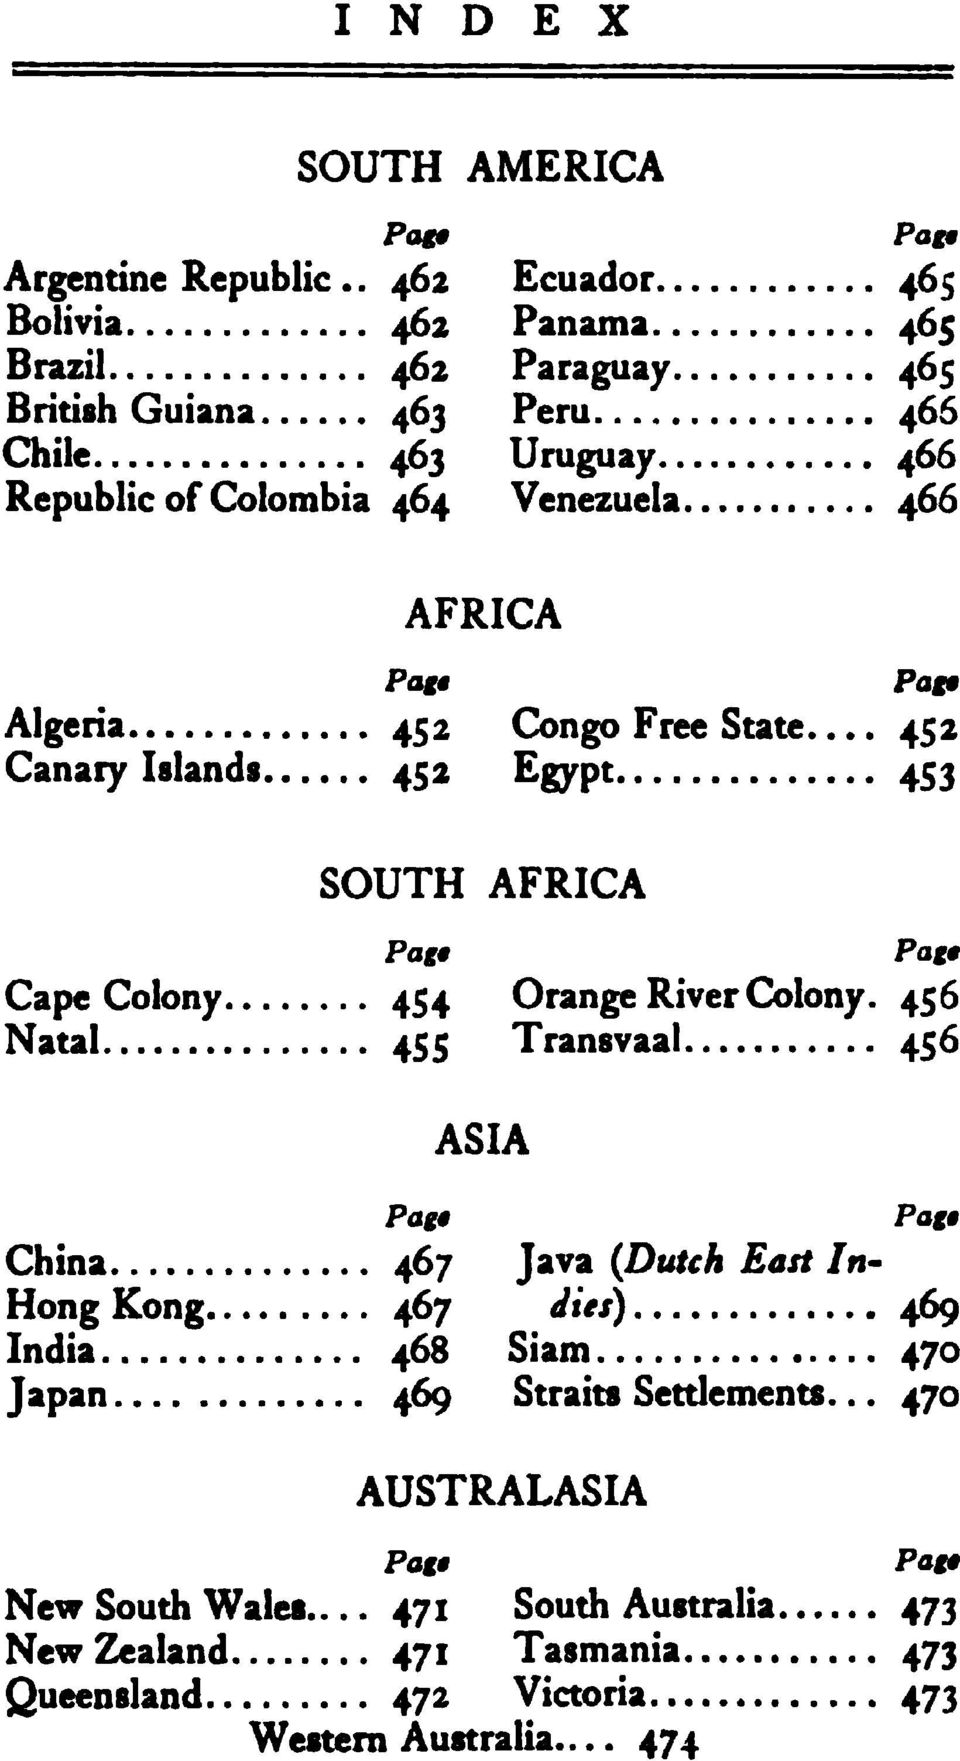 AFRICA Pag Pag9 Algeria 452 Congo Free State. Canary... 452 Islands 452 Egypt 453 SOUTH AFRICA Pag0 Pag Cape Colony 454 Orange River Colony.